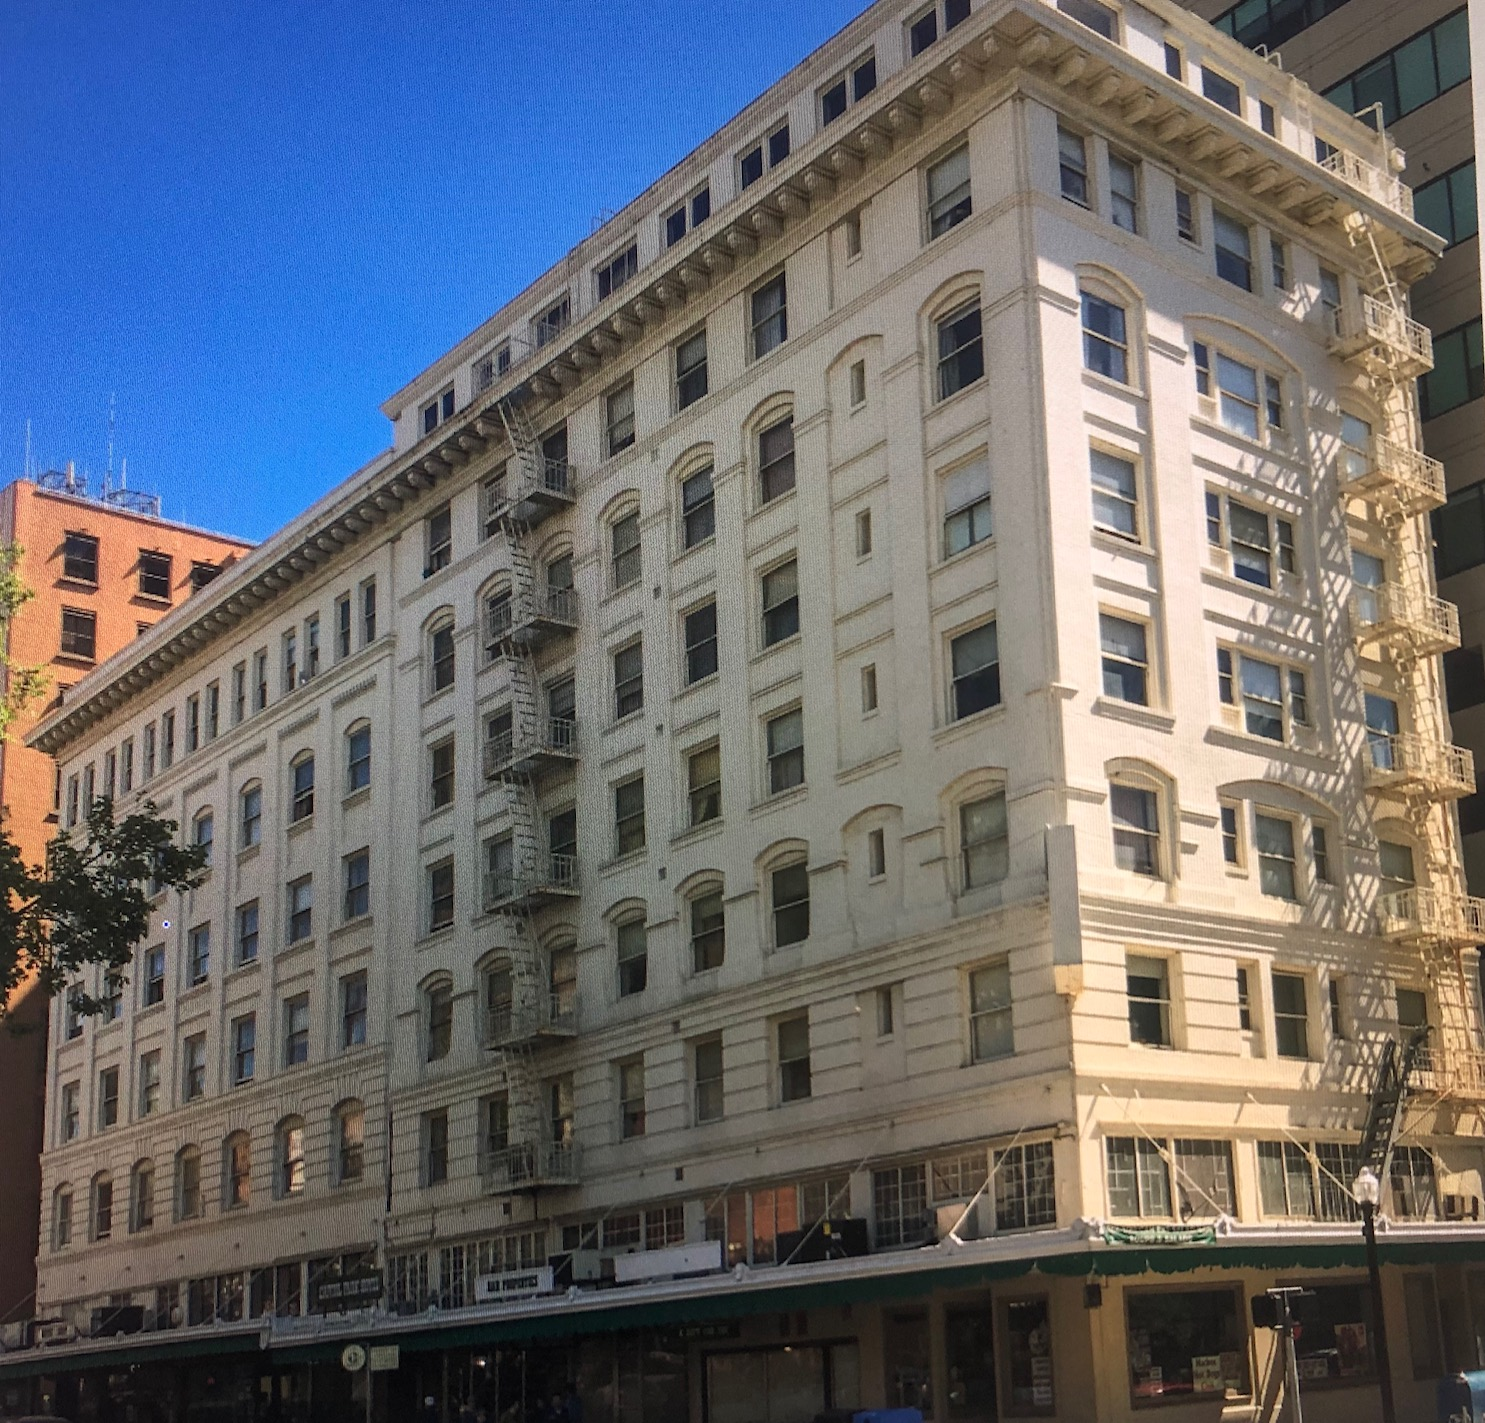 Capitol Park Hotel will be used as a homeless shelter until it is converted into permanent supportive housing.